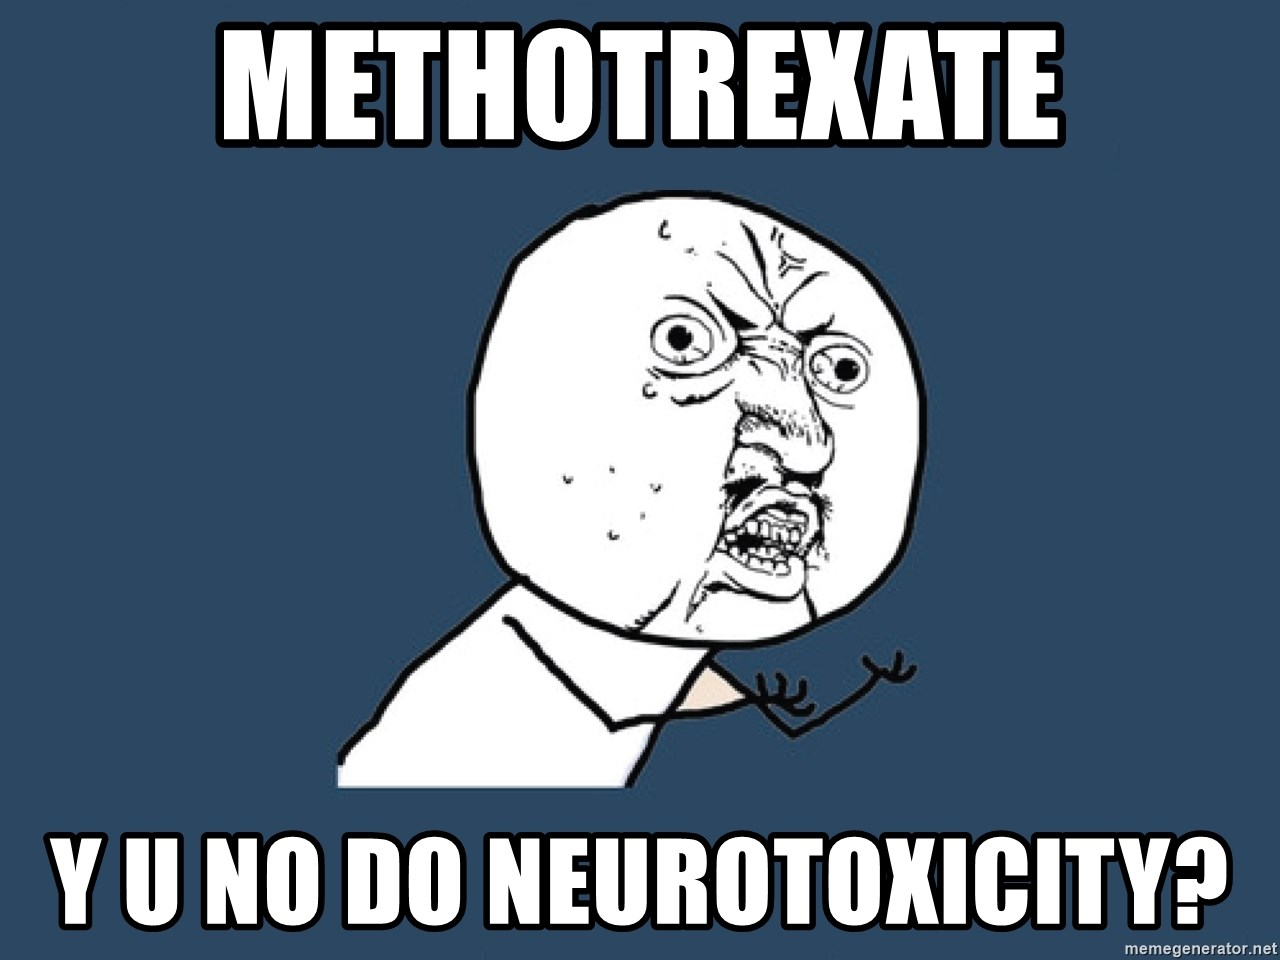 Y U No - Methotrexate Y U NO DO NEUROTOXICITY?